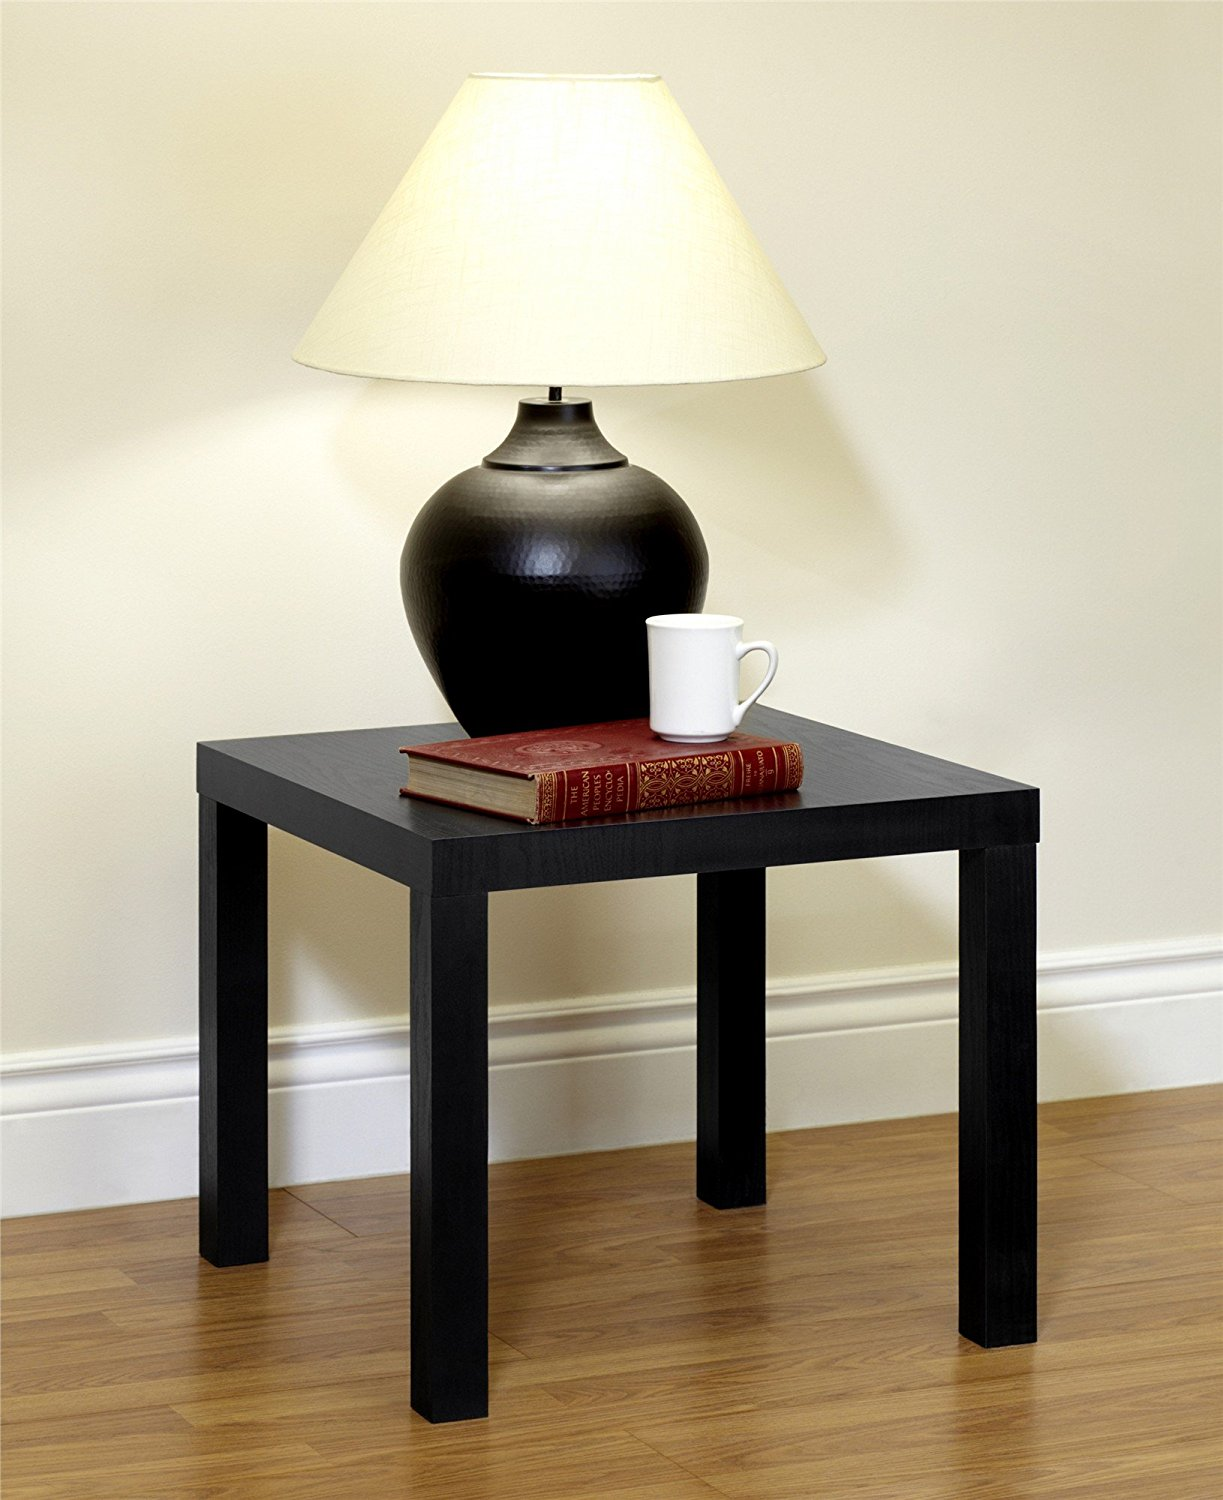 Ideal Walmart has a great deal on this Mainstays Parsons End Table Black or Brown on sale for Reg Select Free Store Pickup or day shipping